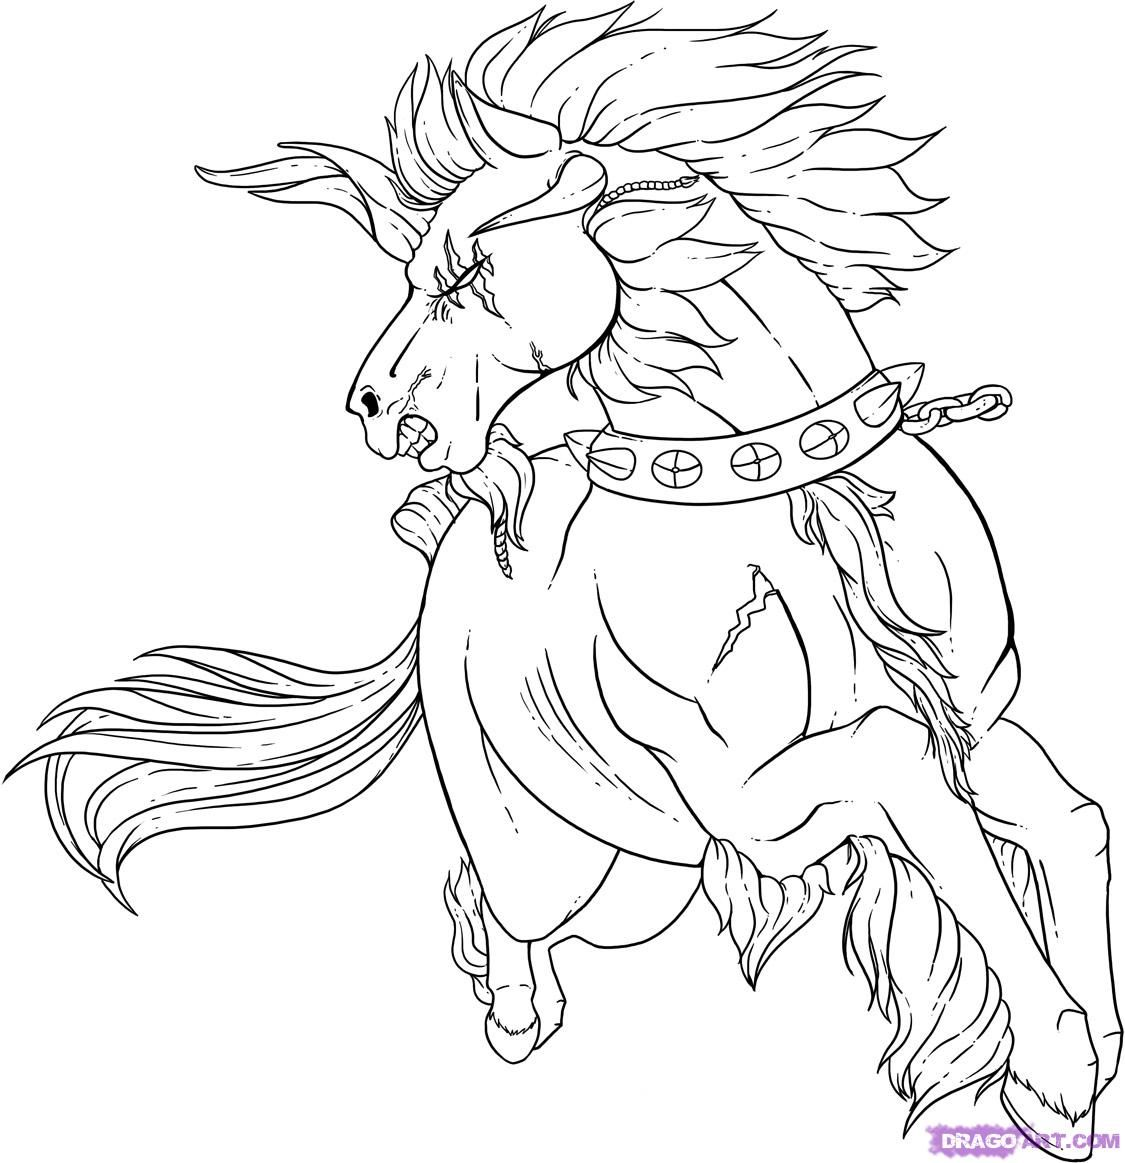 How To Draw A Horse Step By Step Step By Step Tattoos Pop Culture Free Online Drawing Tutorial Added By Dawn June 13 2009 8 10 14 Pm